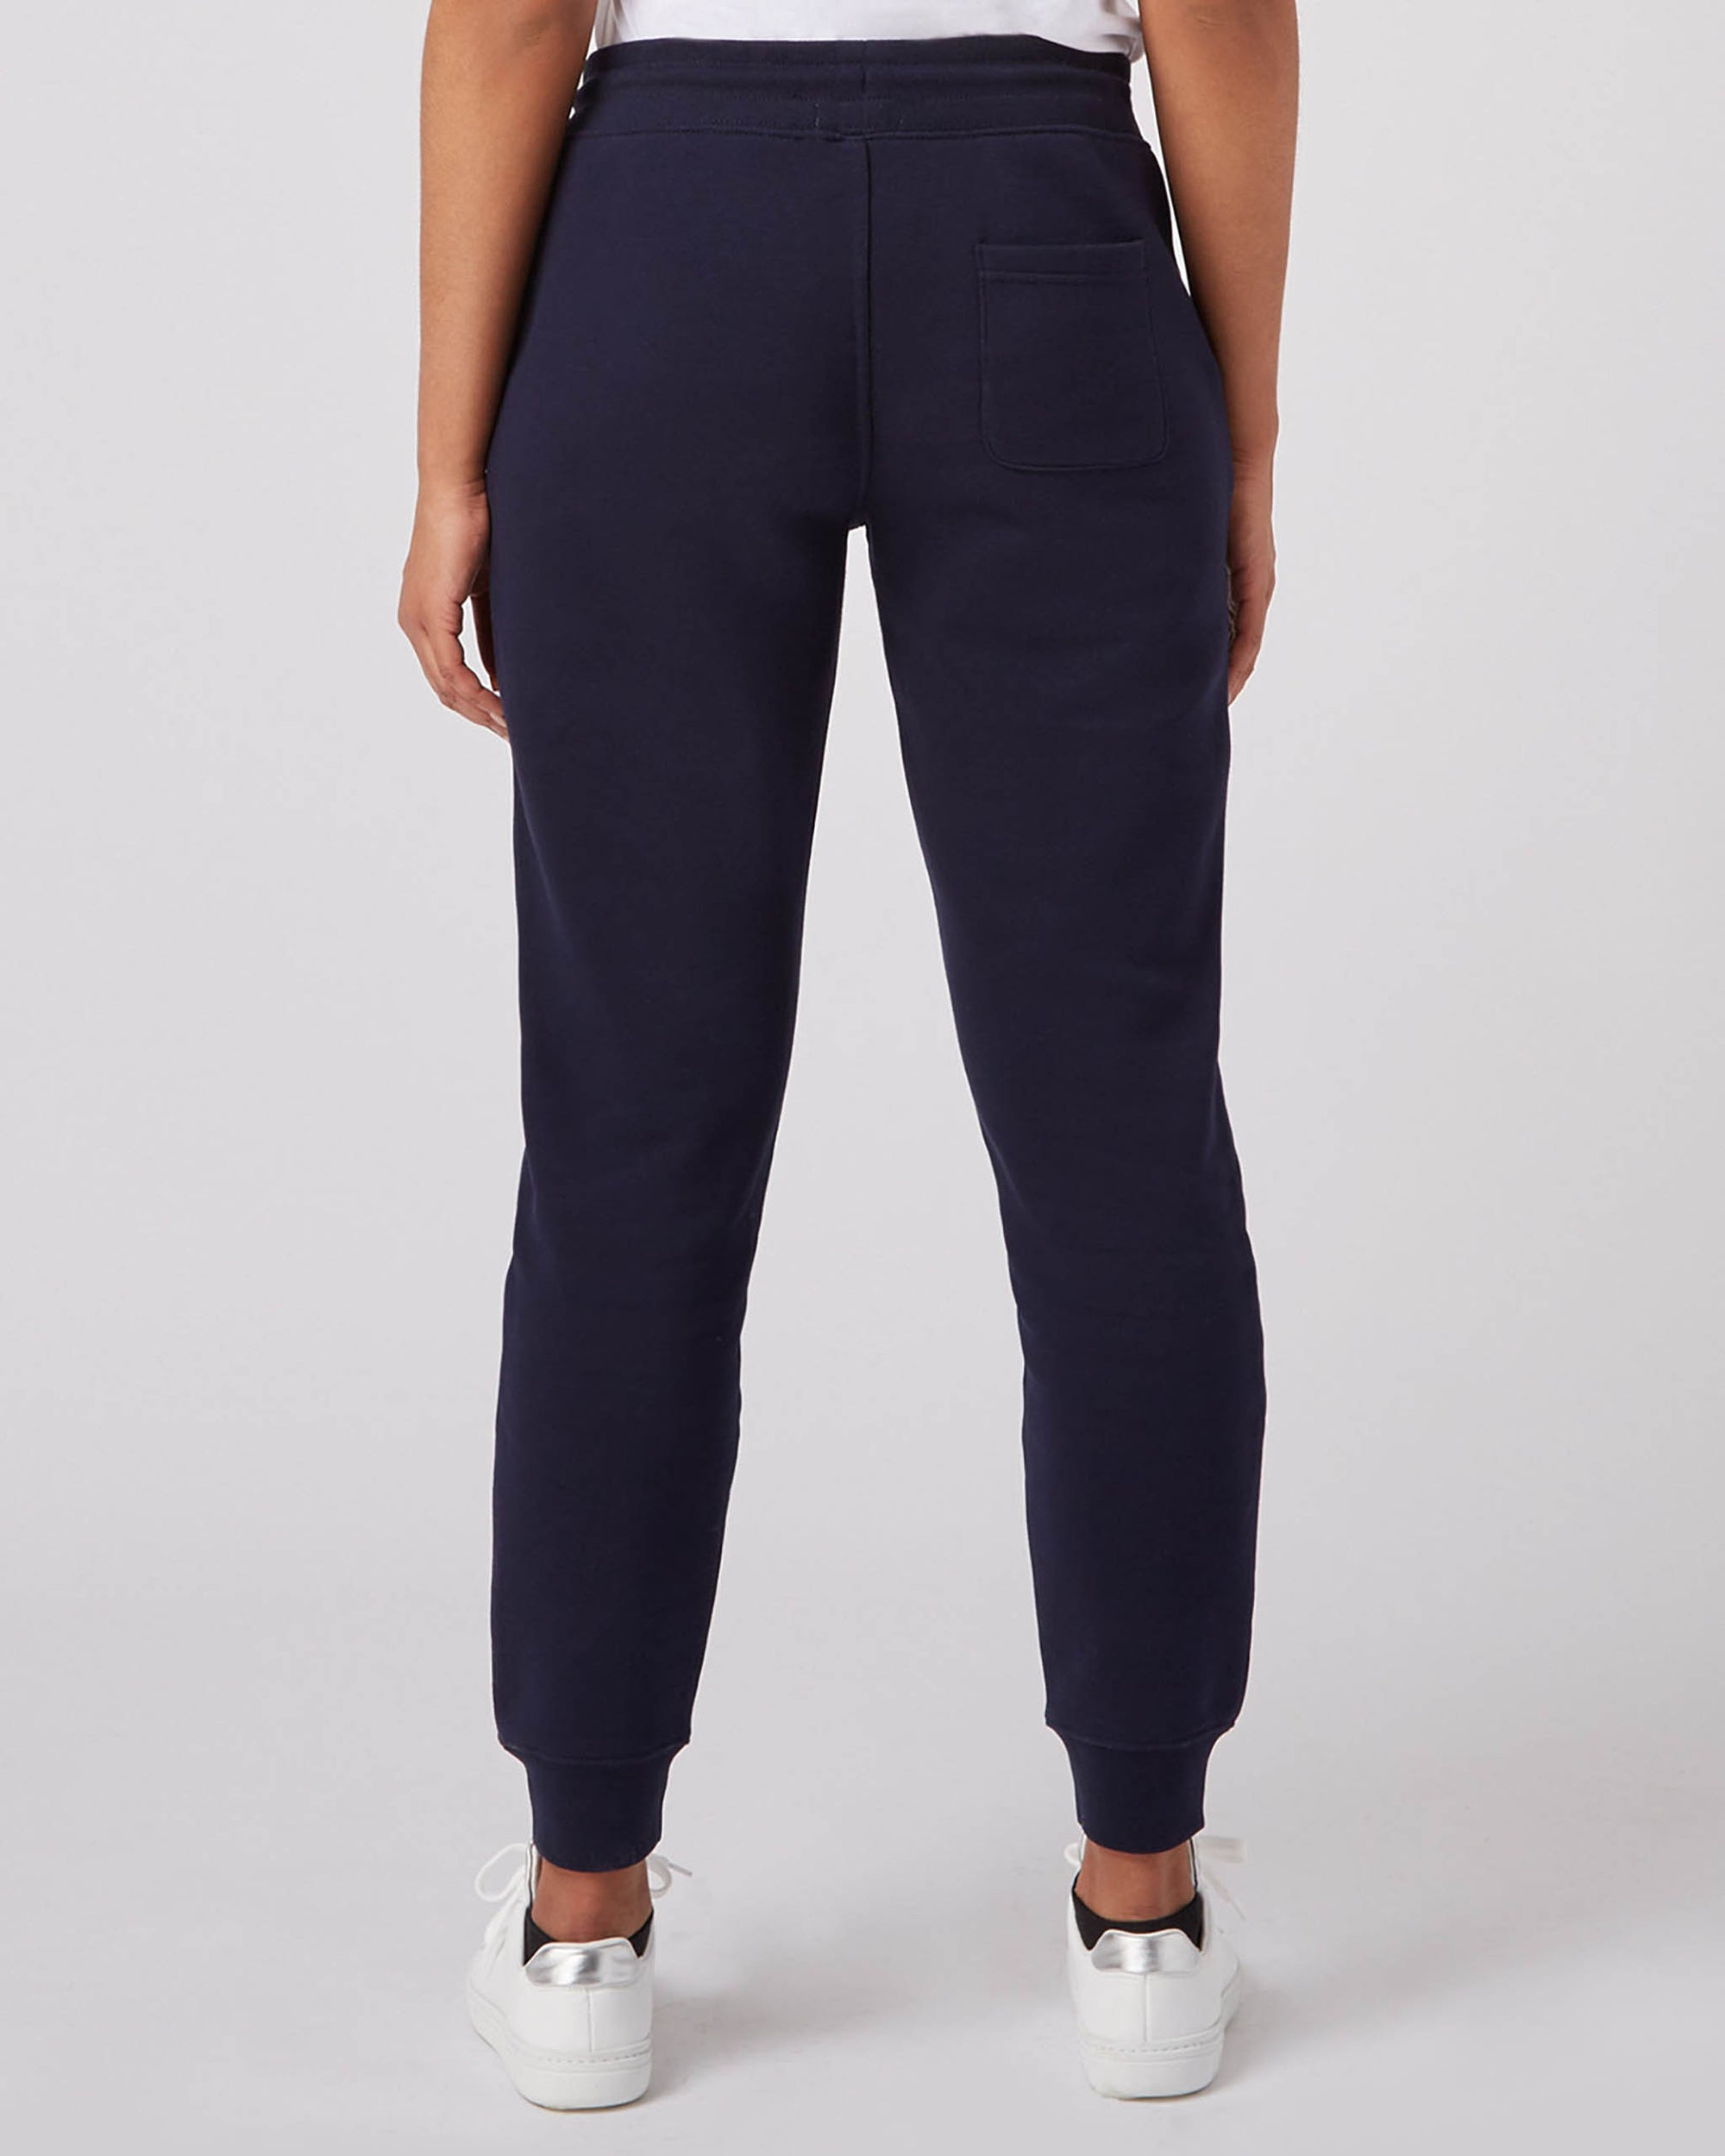 Women's navy winter joggers